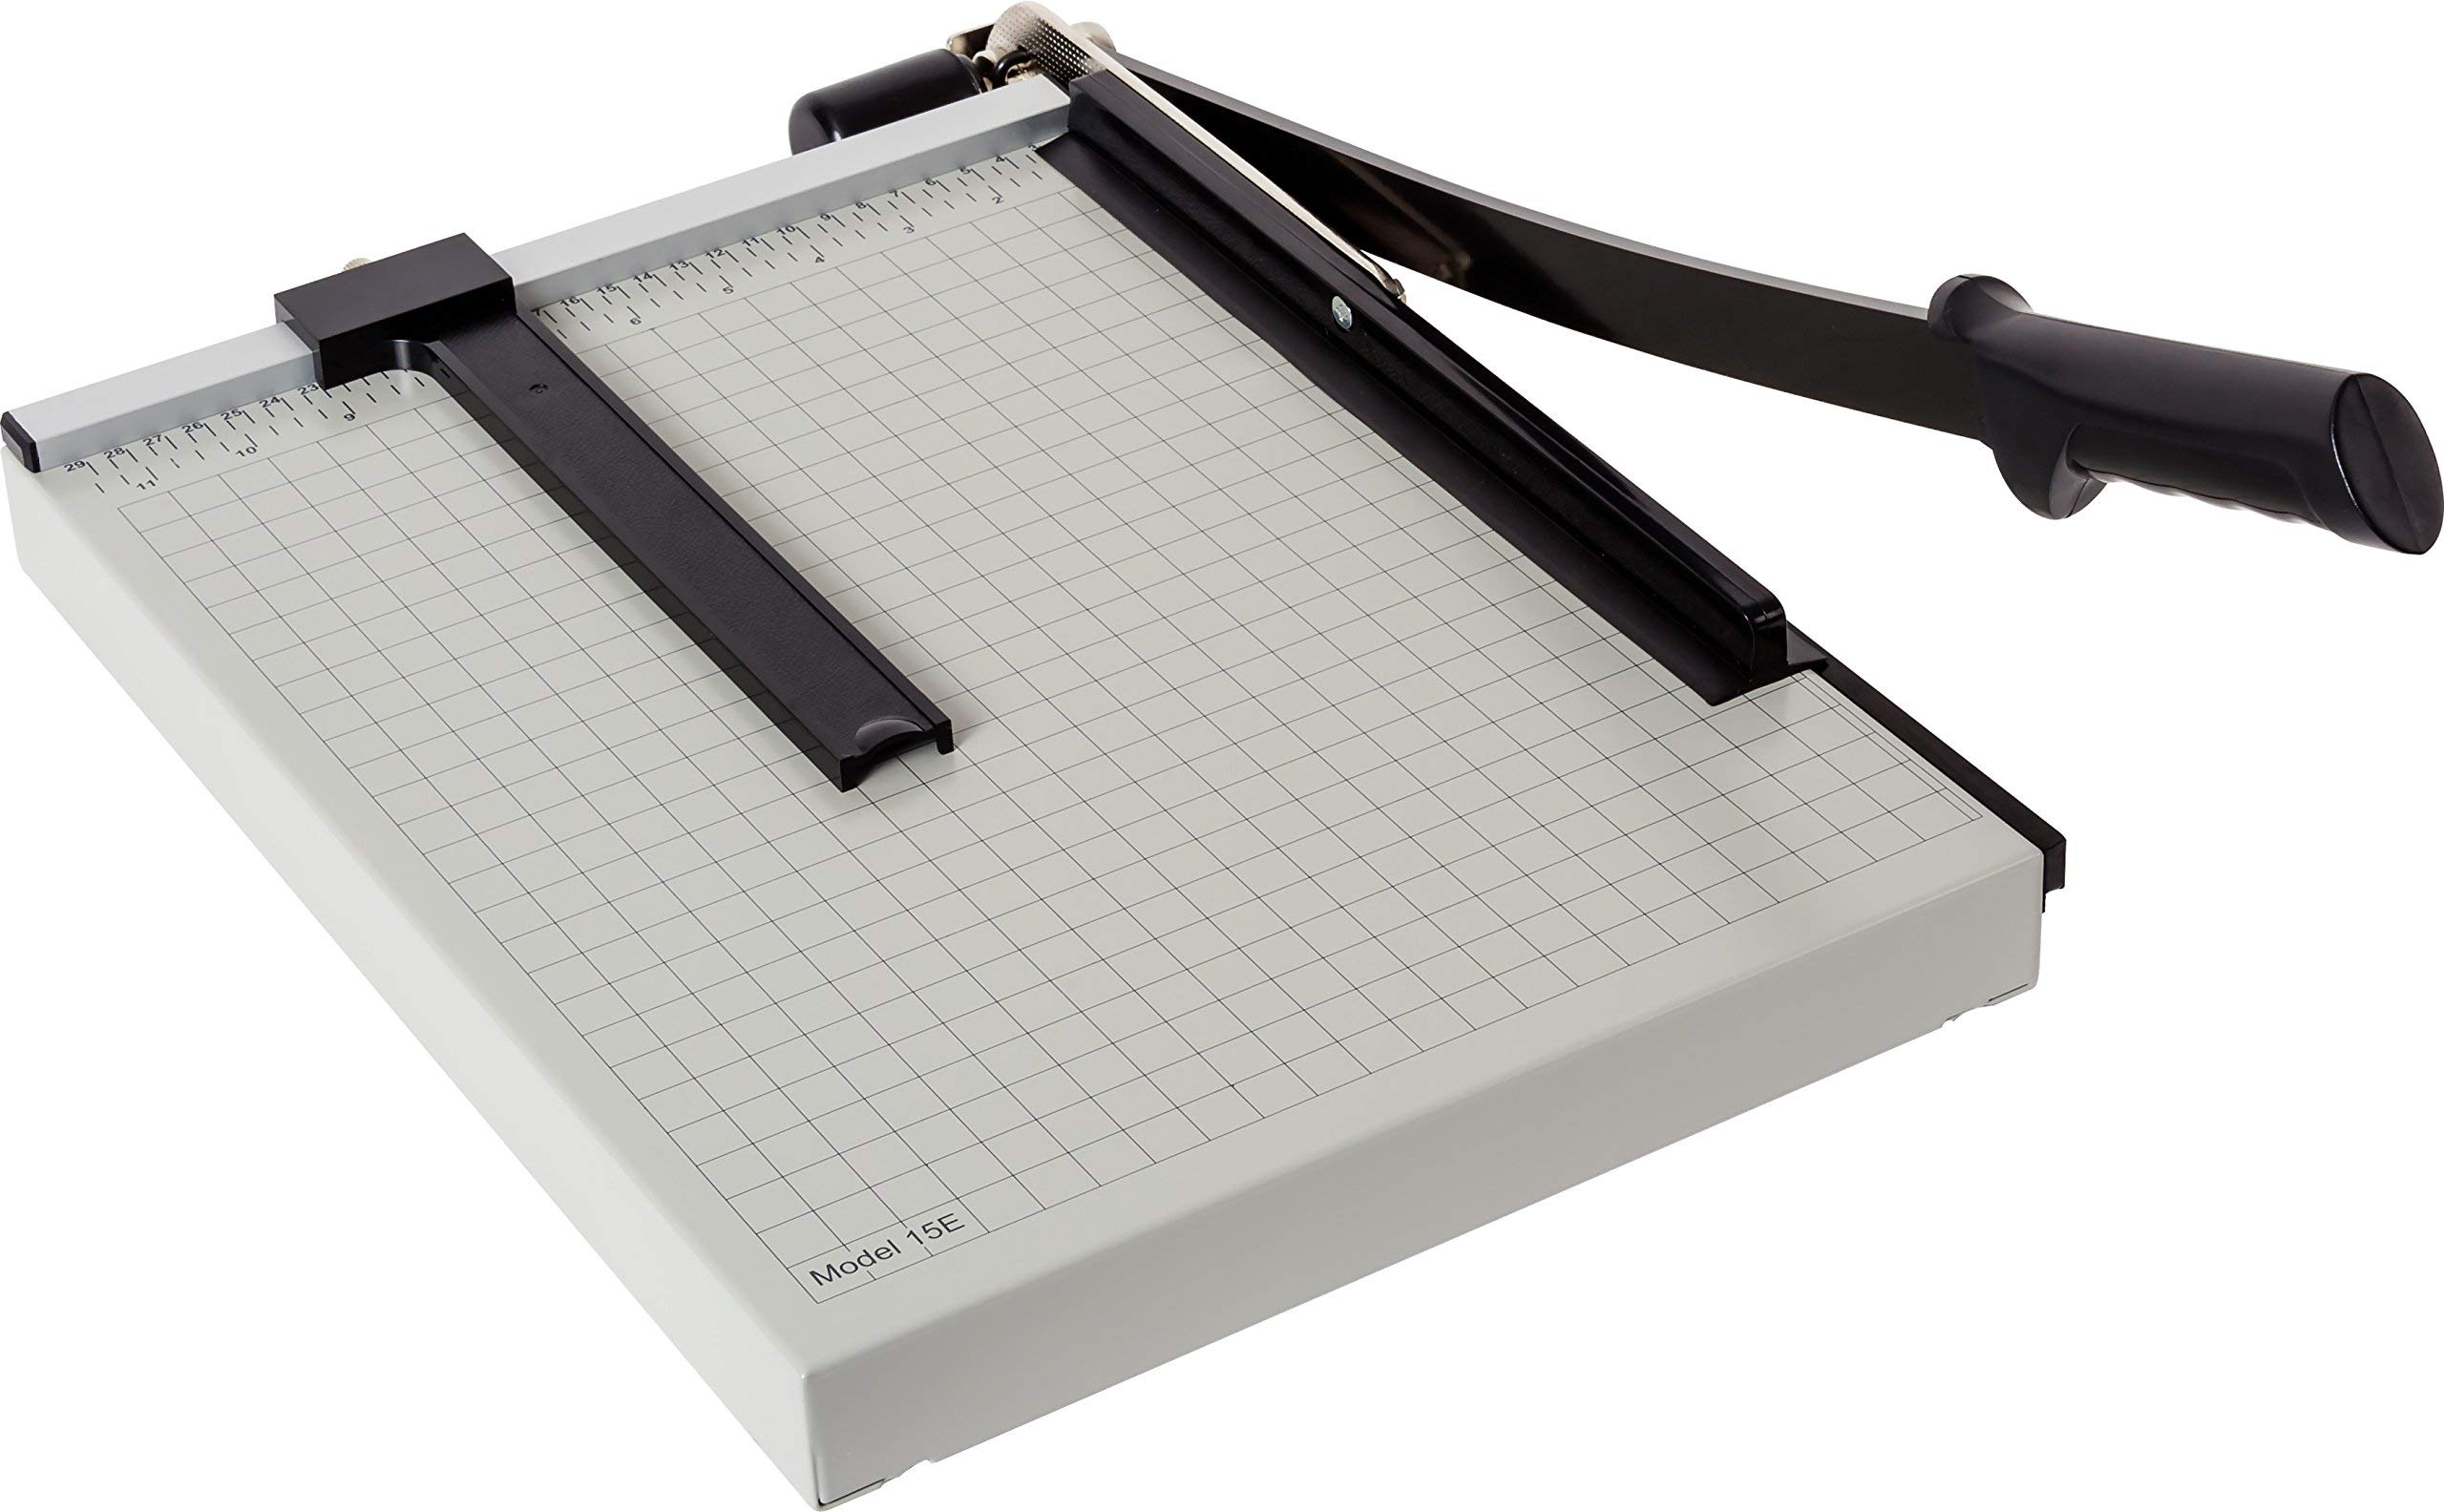 Dahle 15e Vantage Paper Trimmer, 15'' Cut Length, 15 Sheet, Automatic Clamp, Adjustable Guide, Metal Base with 1/2'' Gridlines, Guillotine Paper Cutter (Renewed) by Dahle